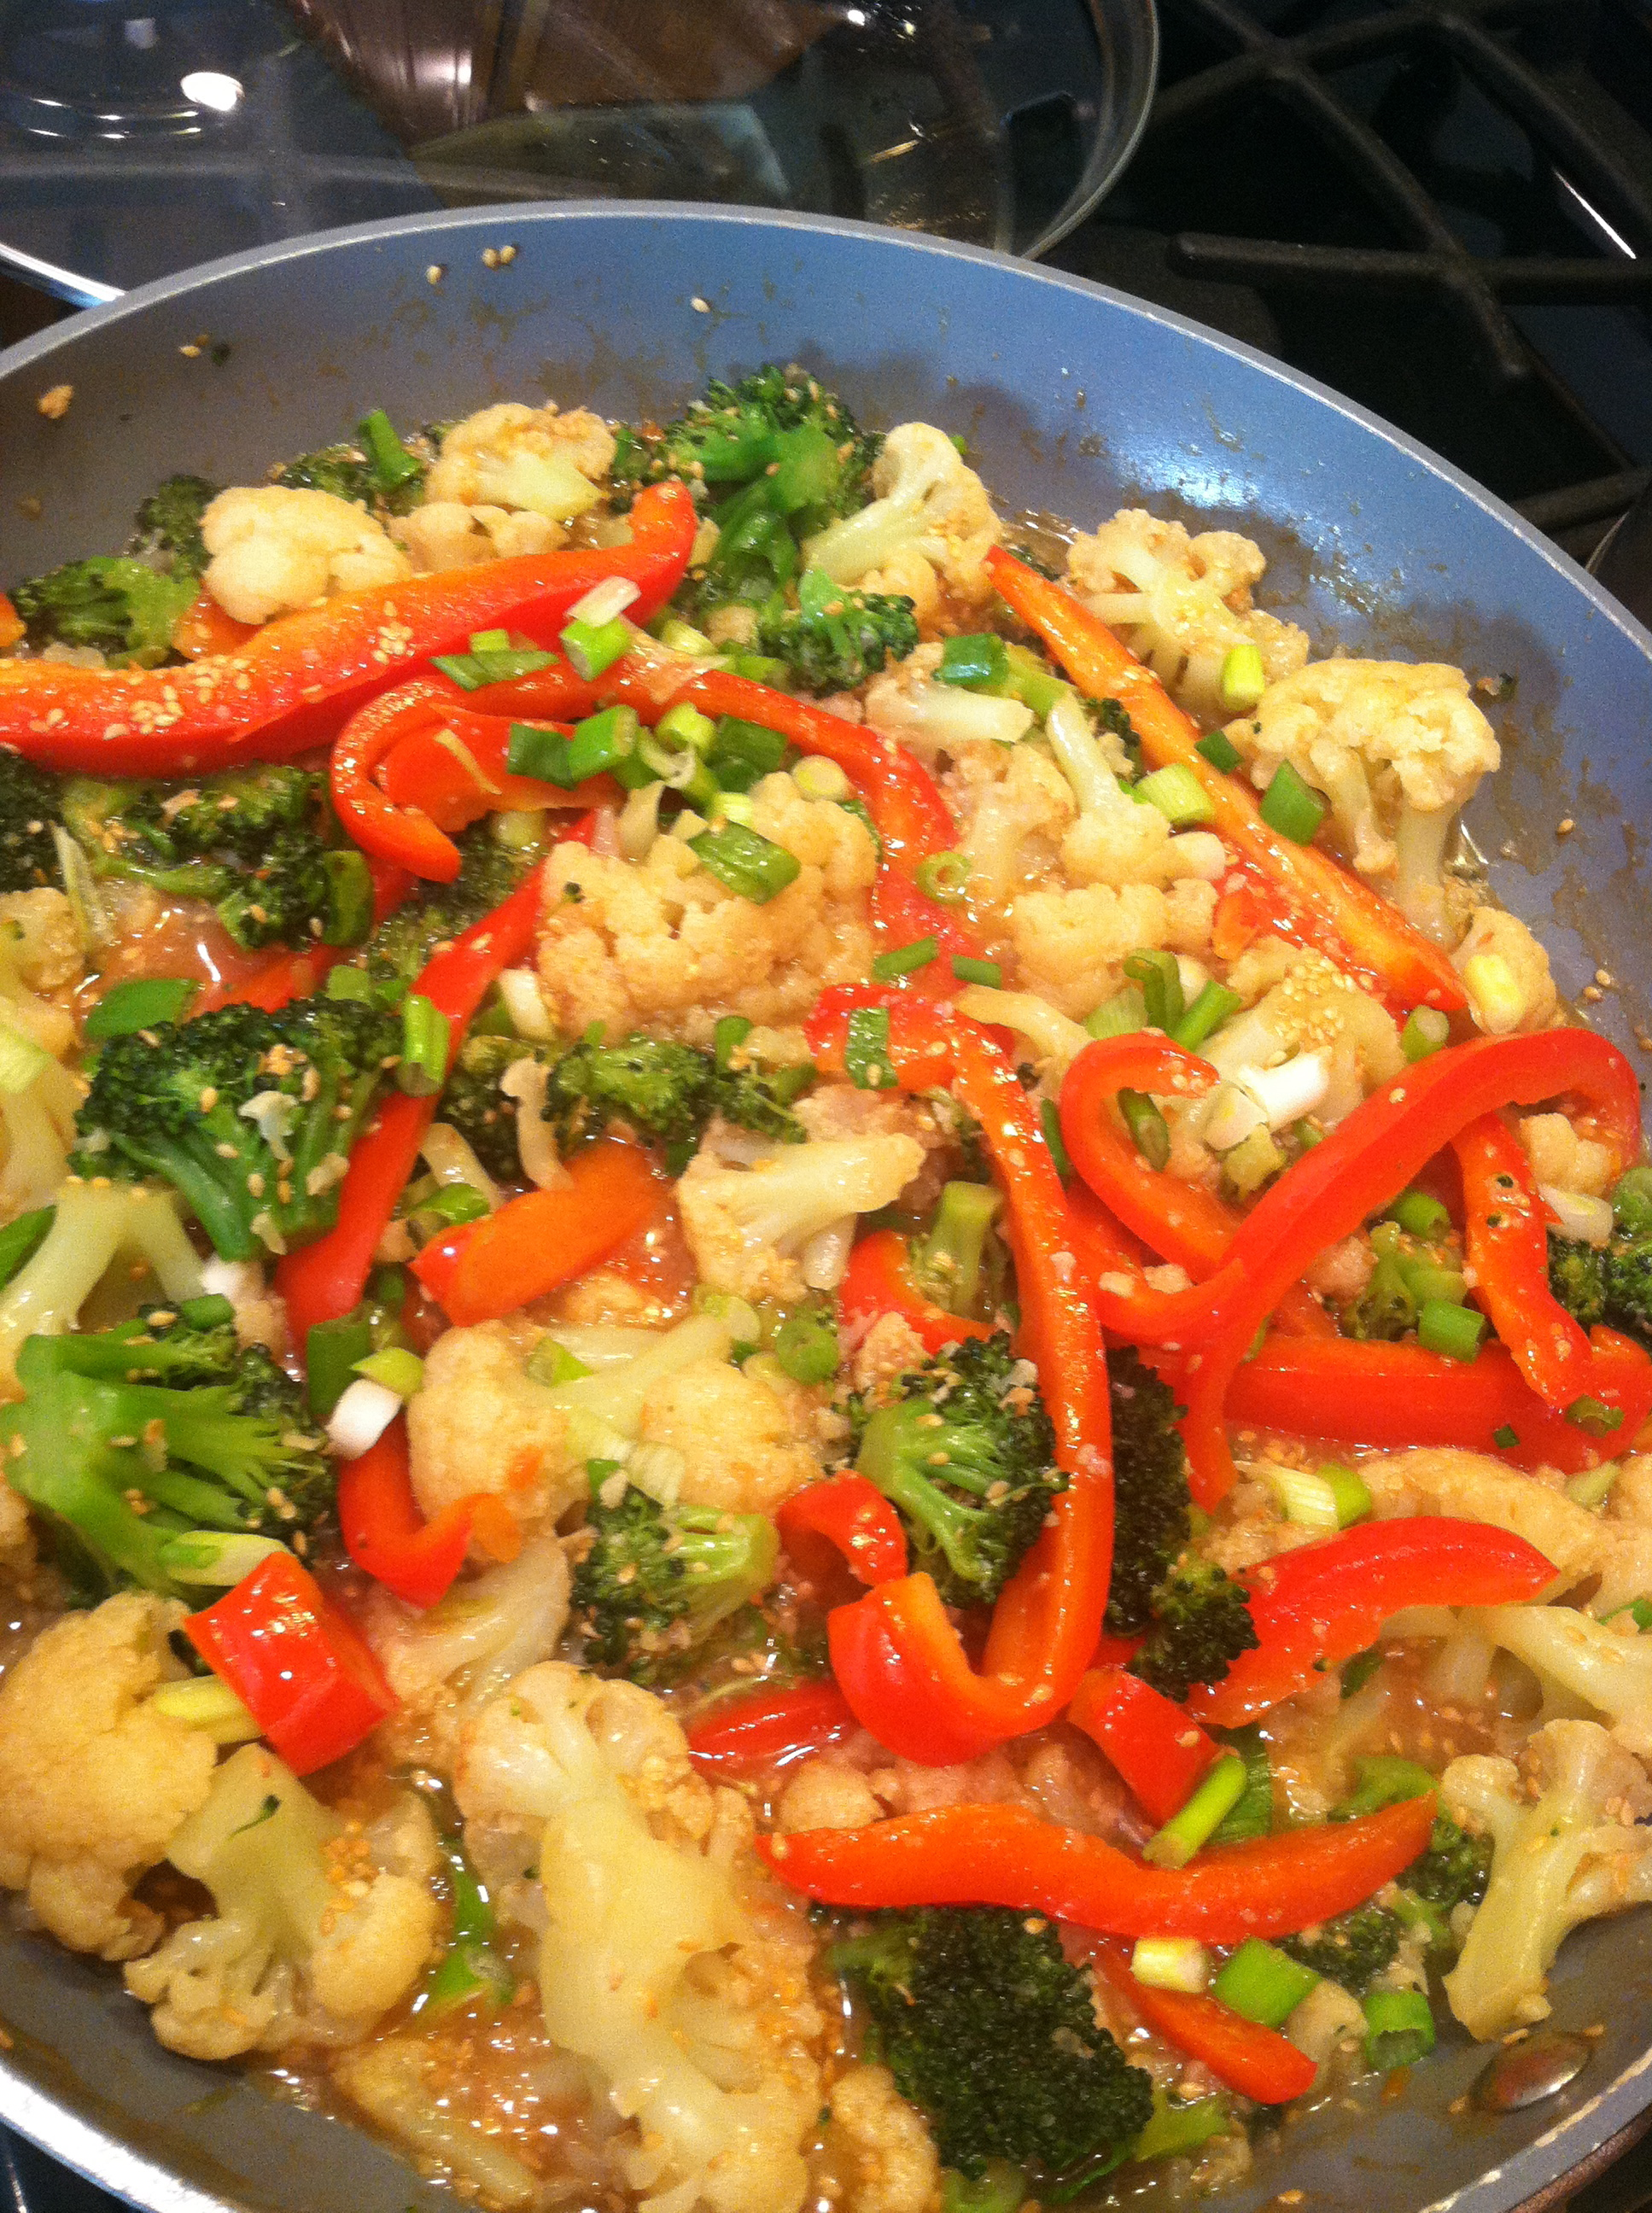 Roasted Ginger Vegetable Stir-Fry | Robin's Recipes n Food Blog